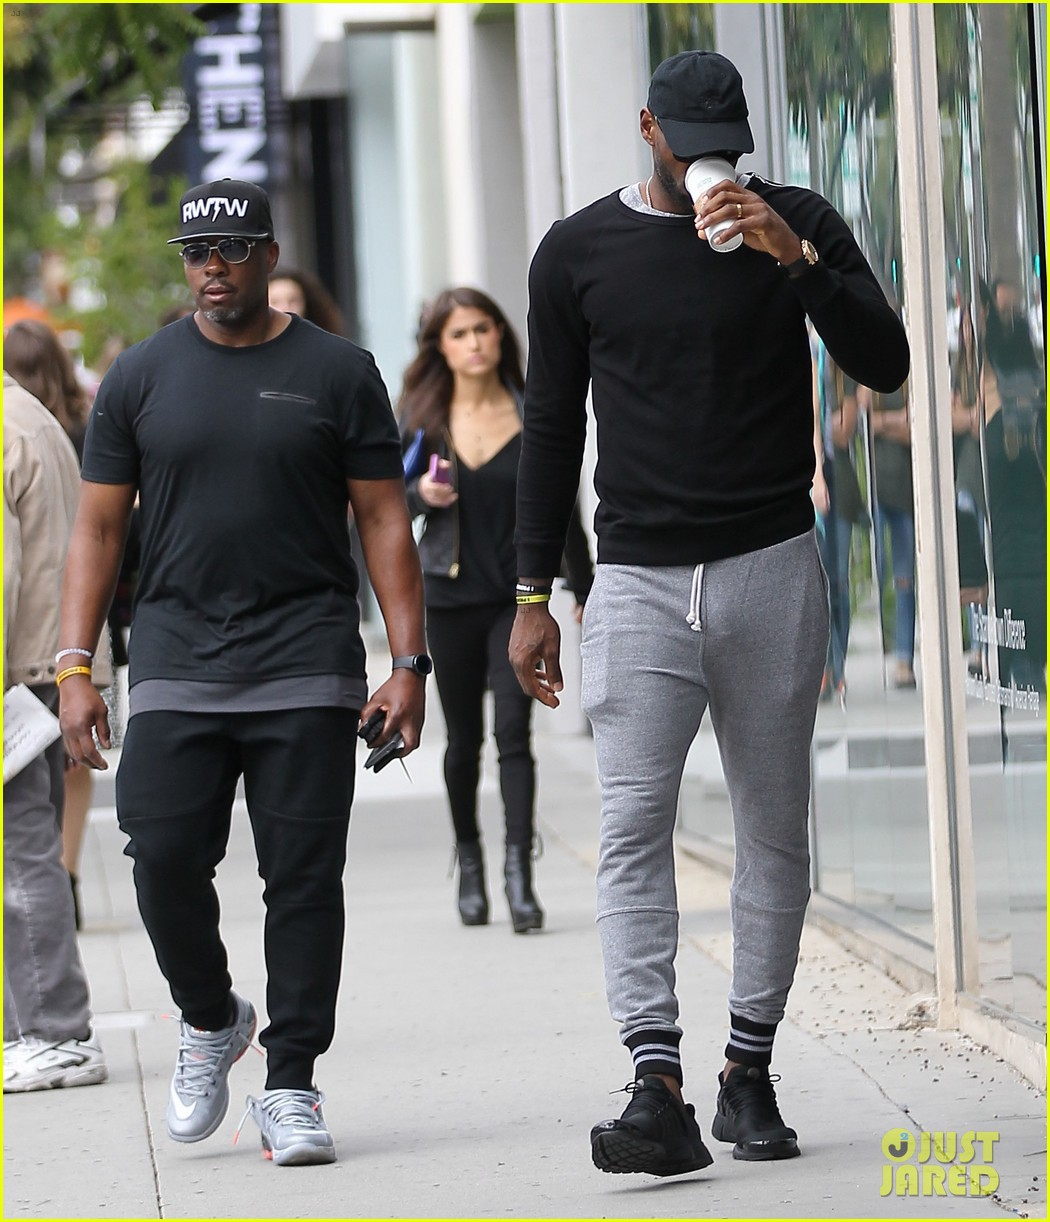 lebron james steps out in very tight sweatpants photo